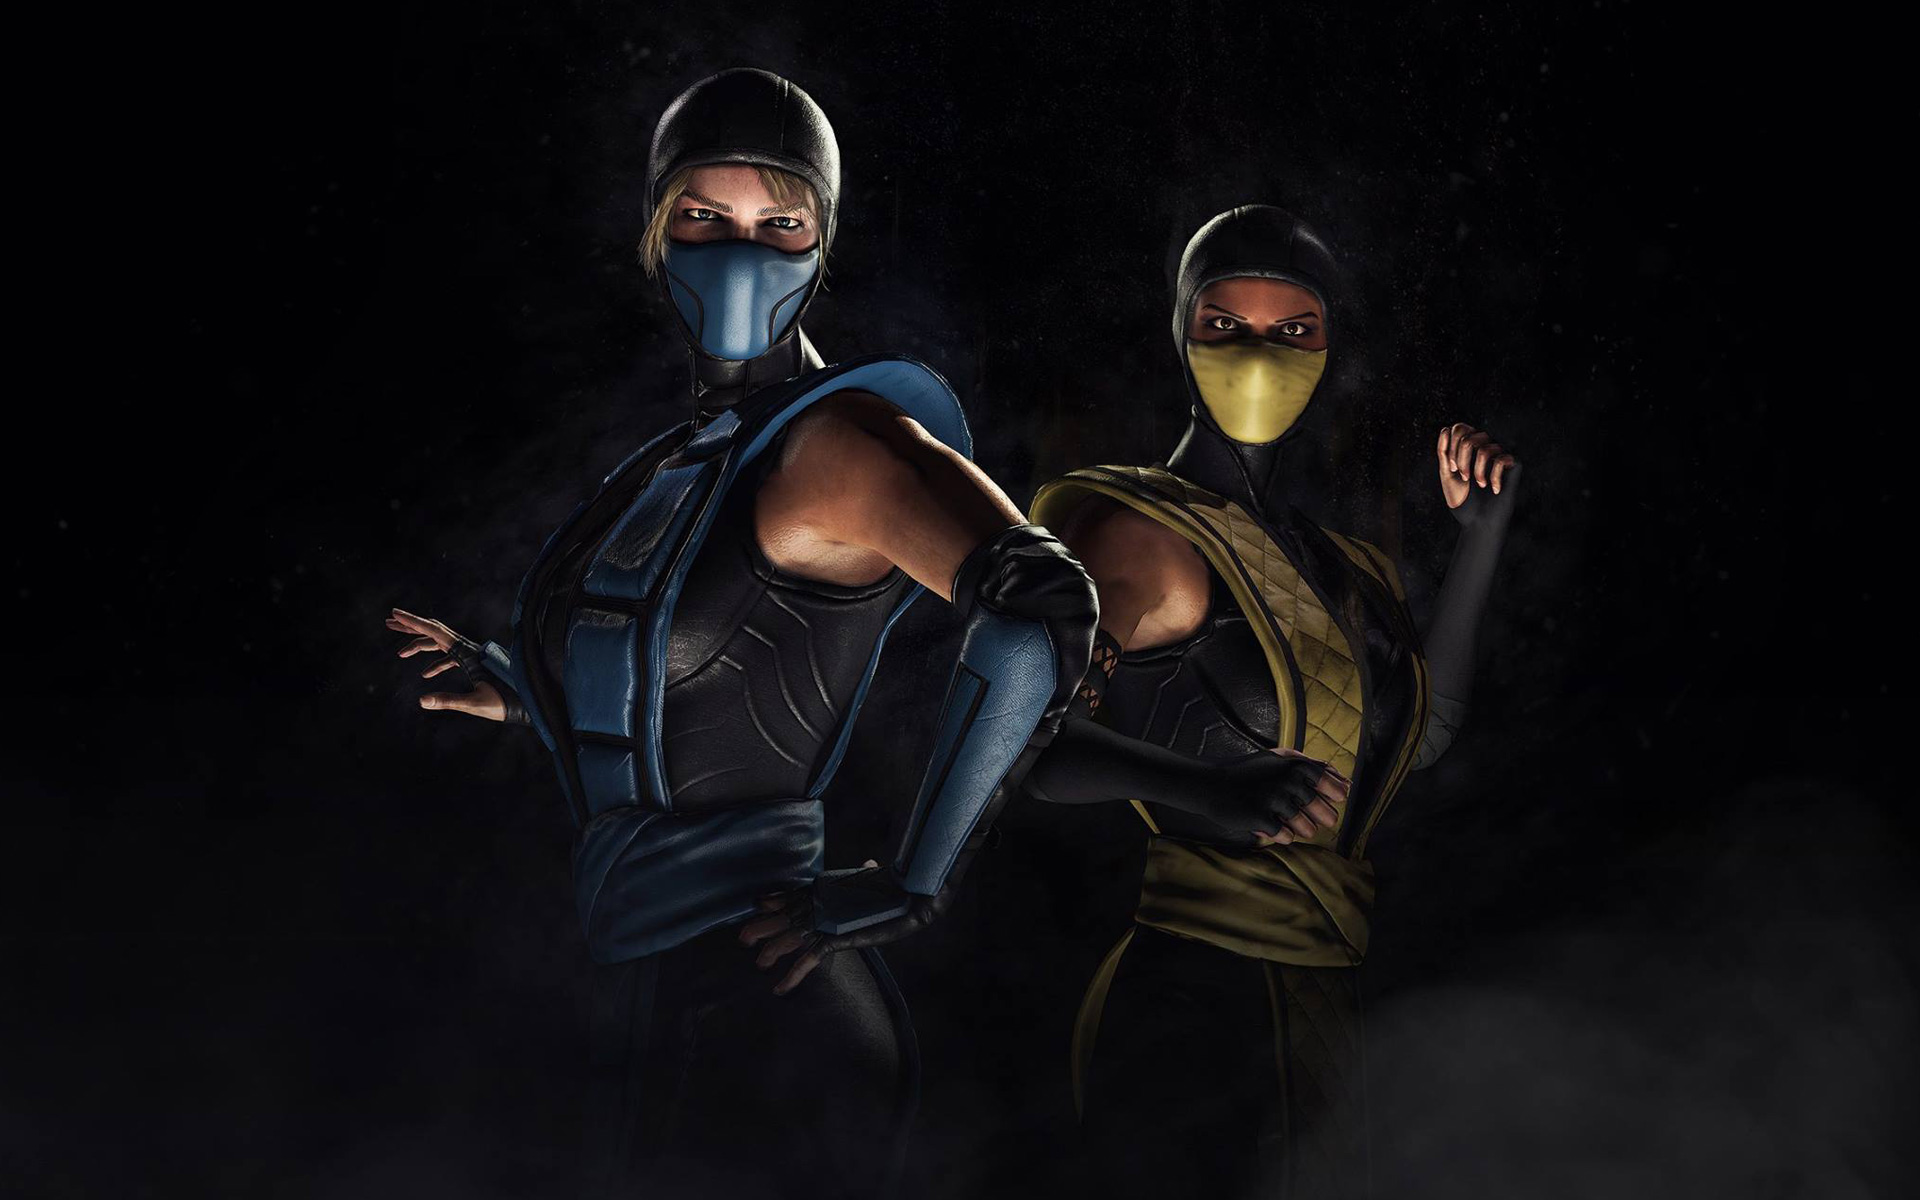 kombat wallpapers, photos and desktop backgrounds up to 8k